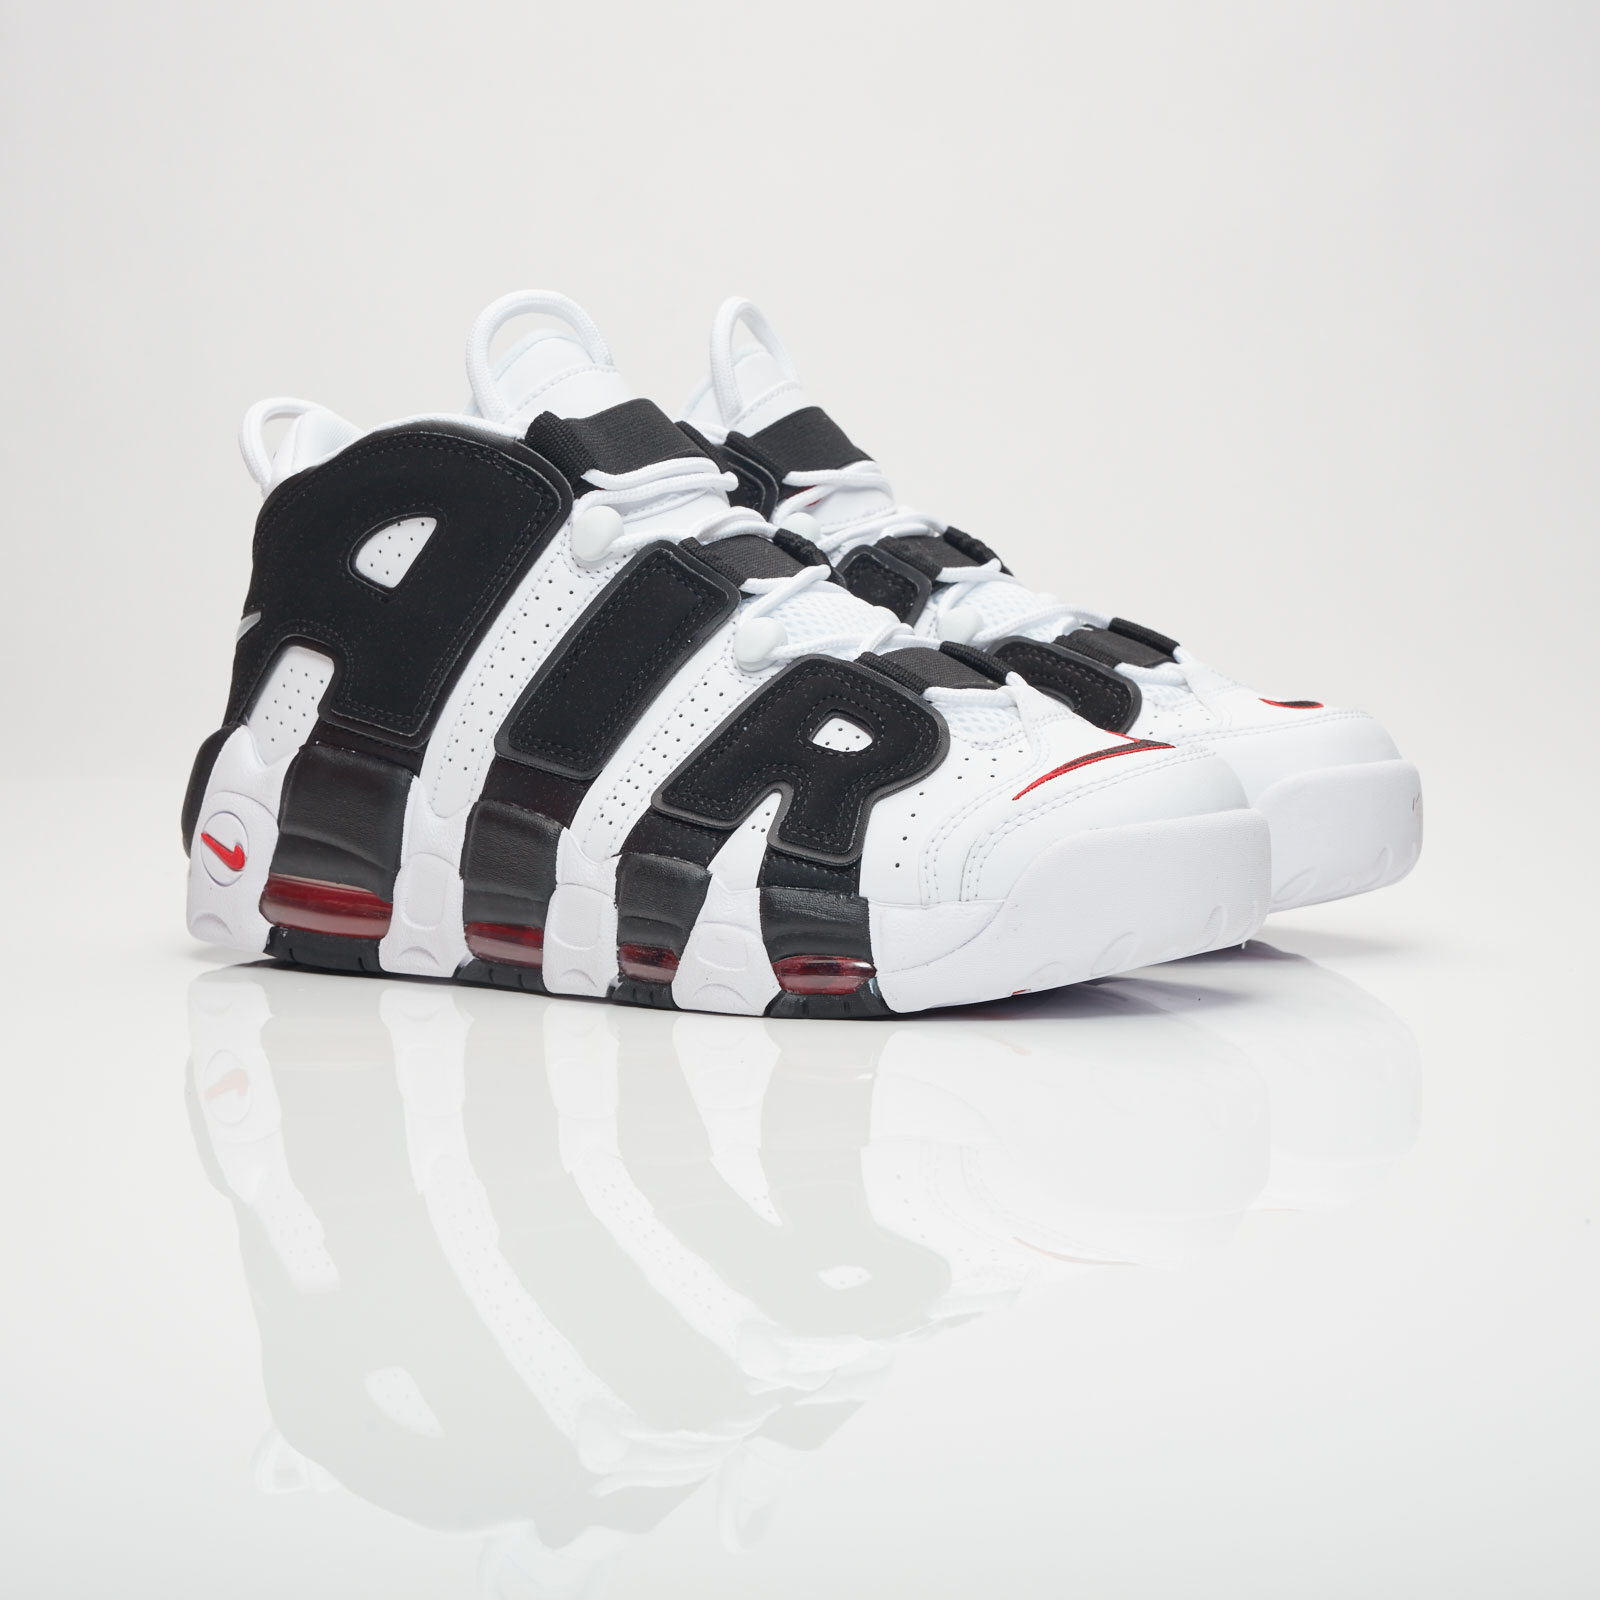 Nike Air More Uptempo - 414962-105 - Sneakersnstuff  ab252be2eb